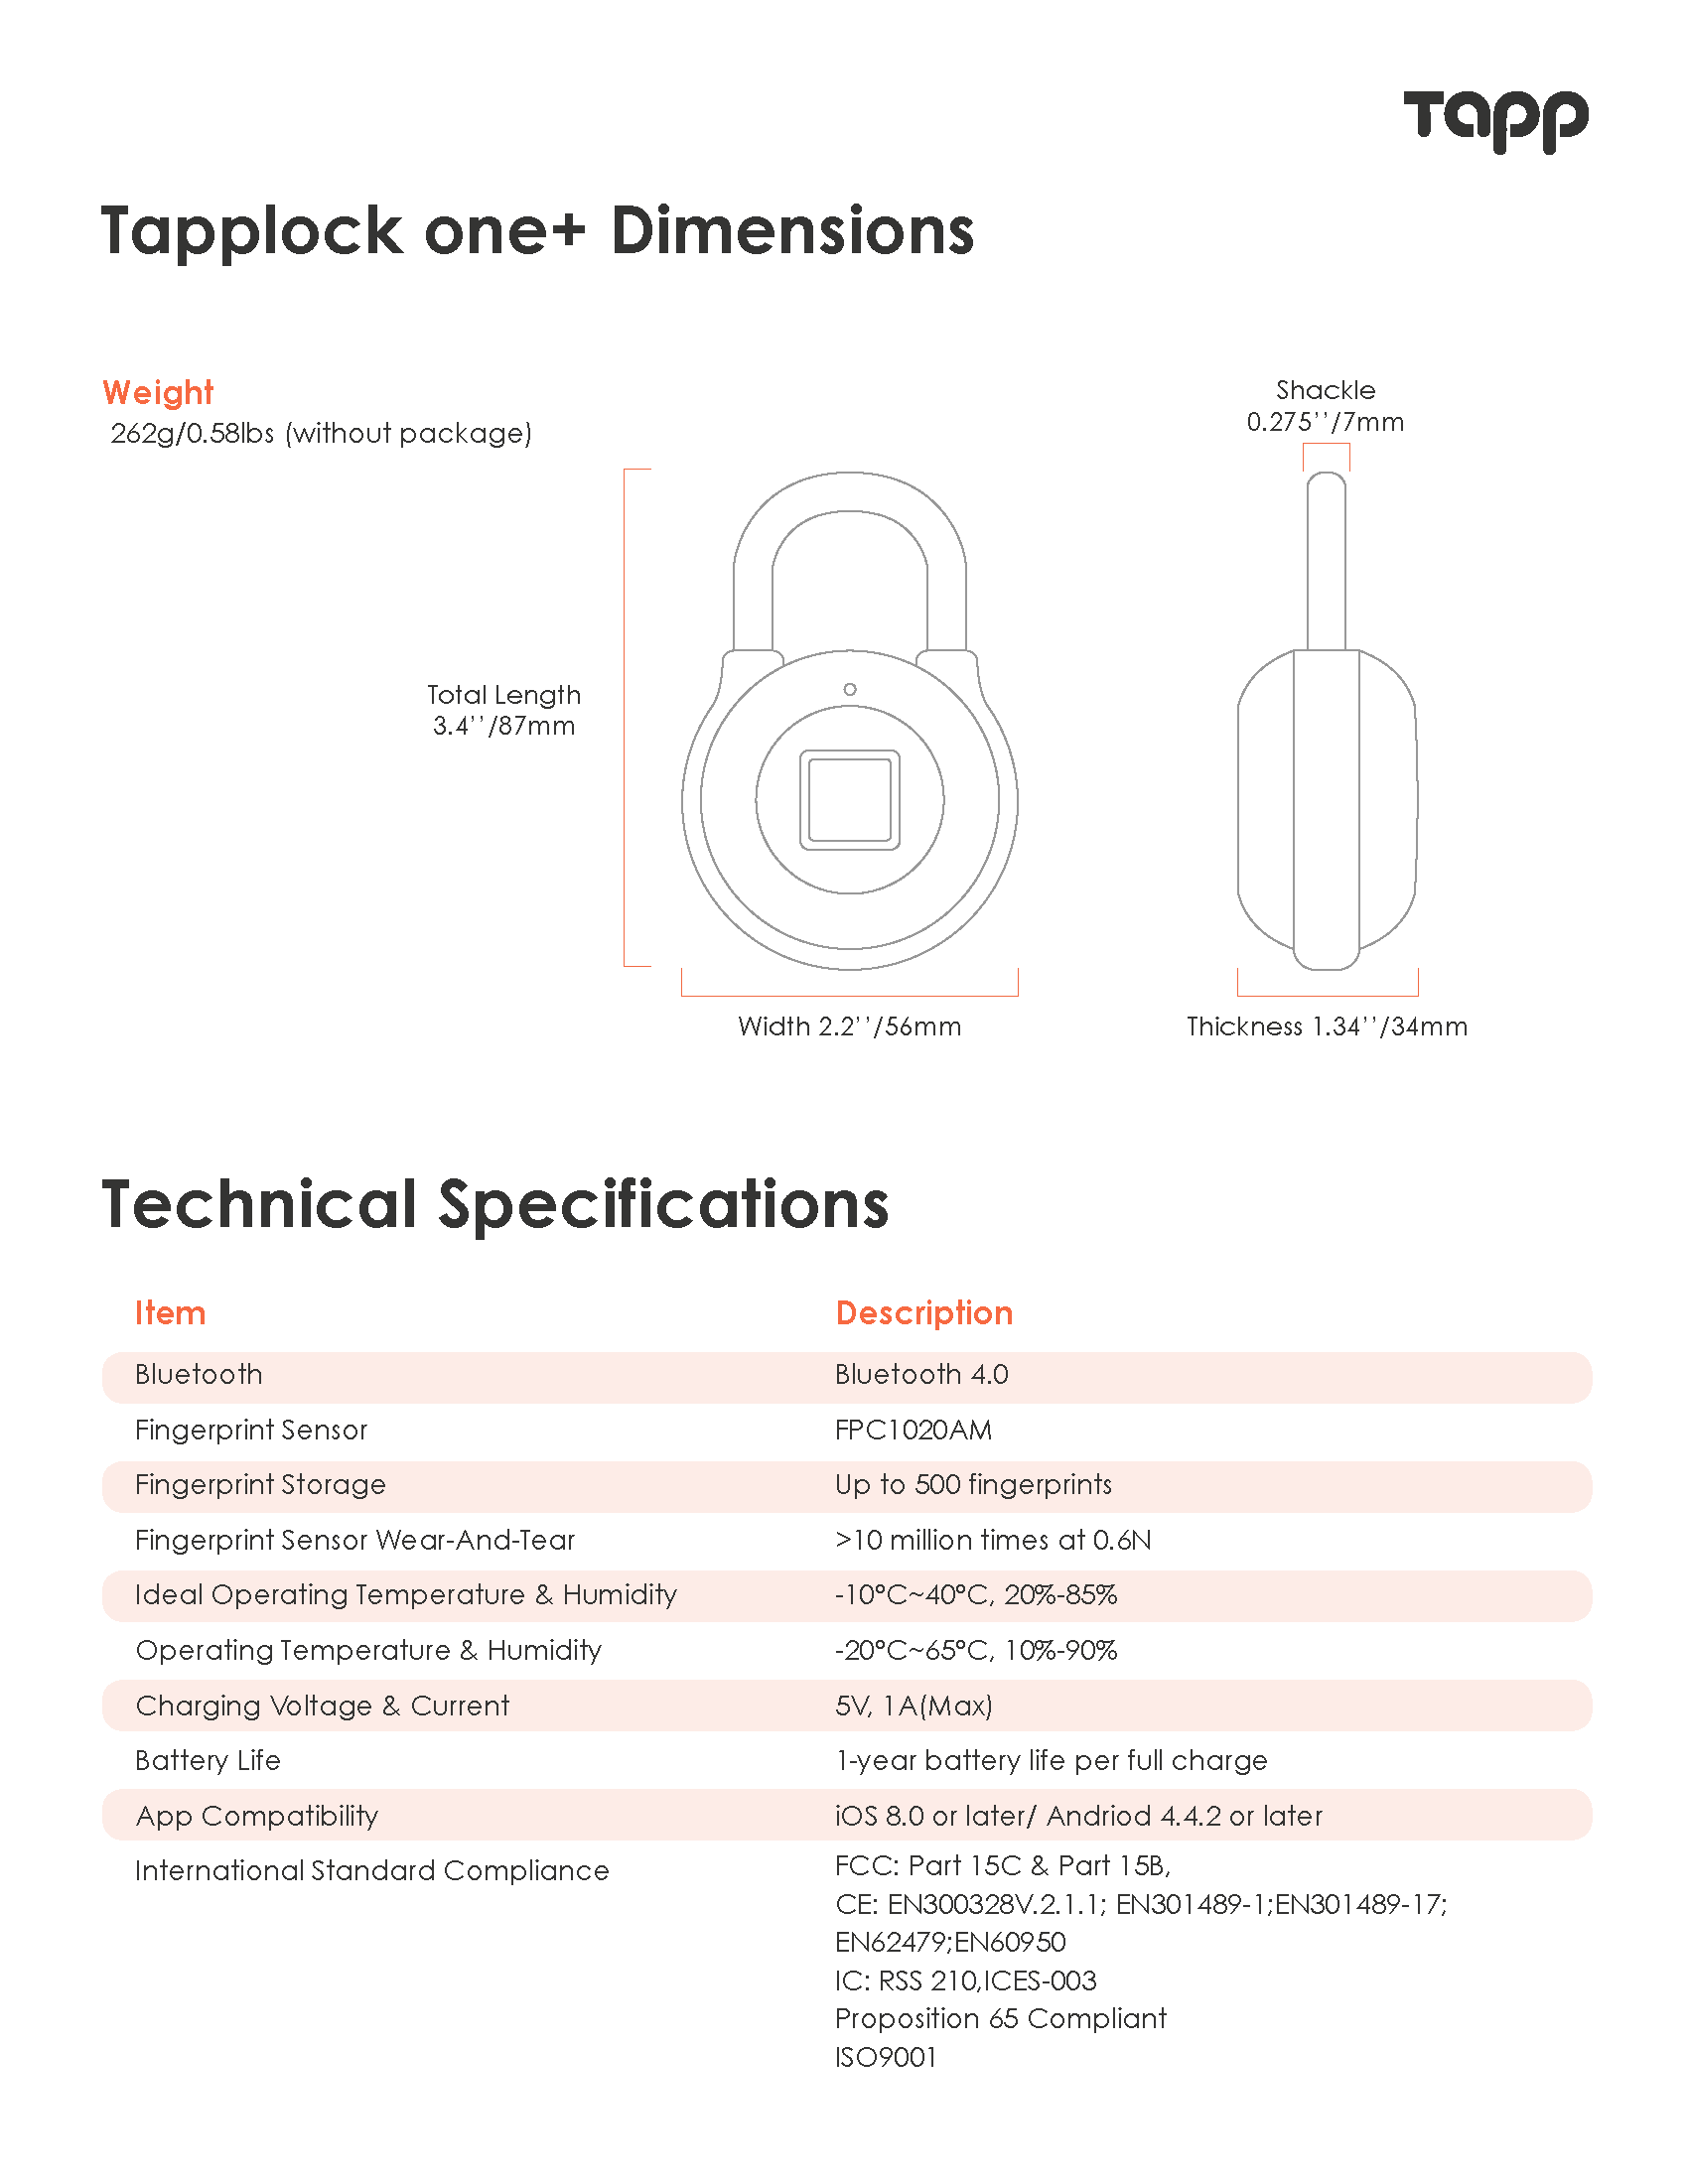 What are the product specifications of Tapplock one+?